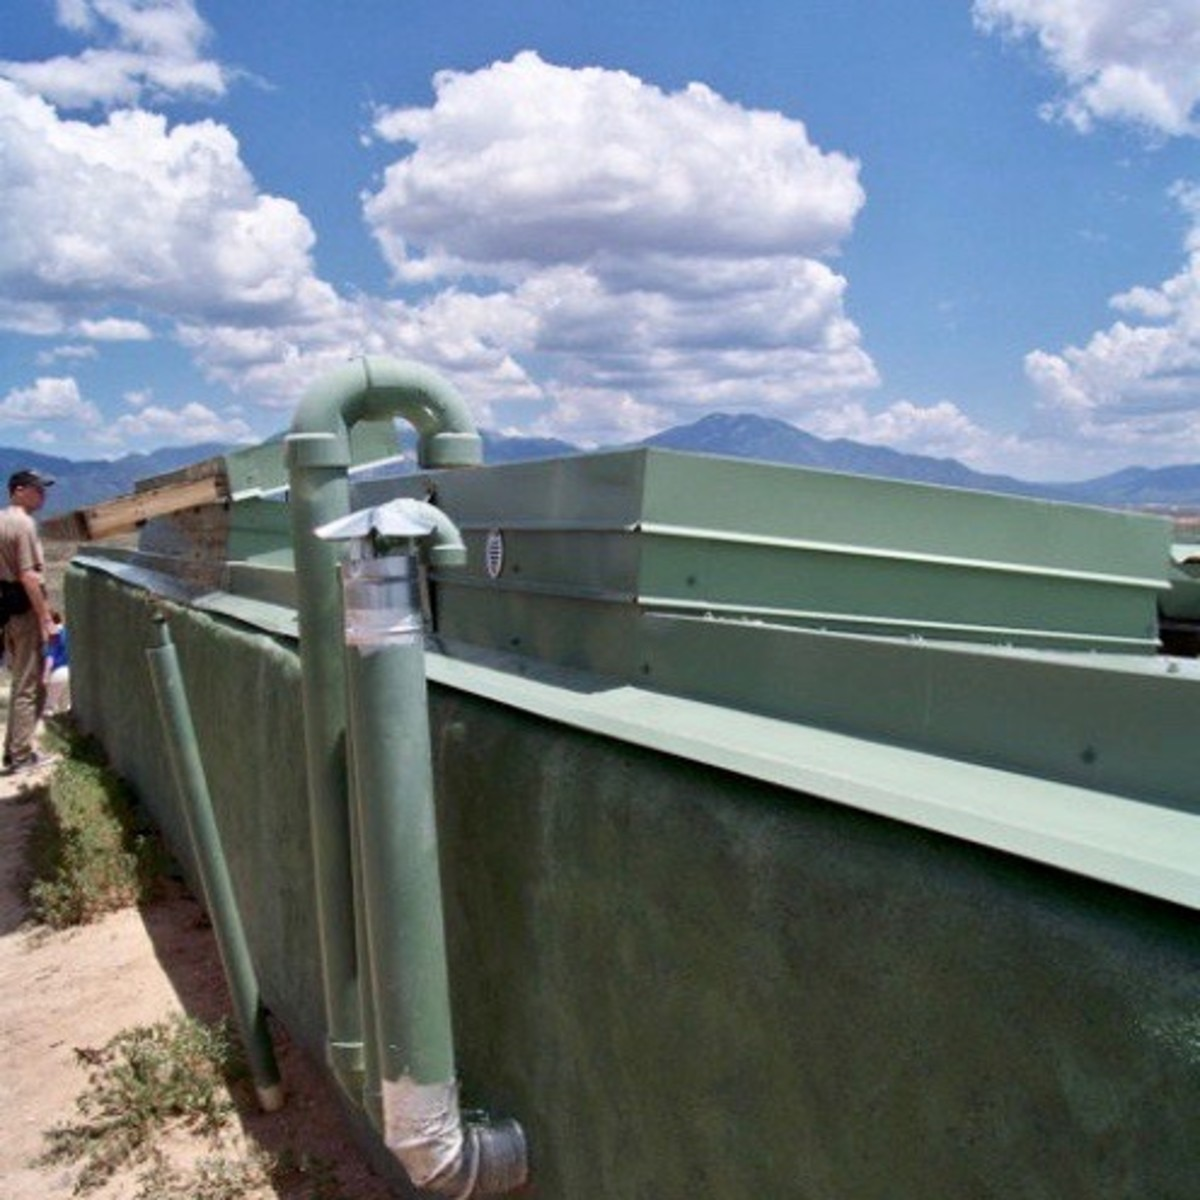 Solar Water Heater - The pipe leading to the bottom of the solar panel supplies it with cold water. The pipe emerging from the top of it carries heated water down to a hot water tank inside the house.